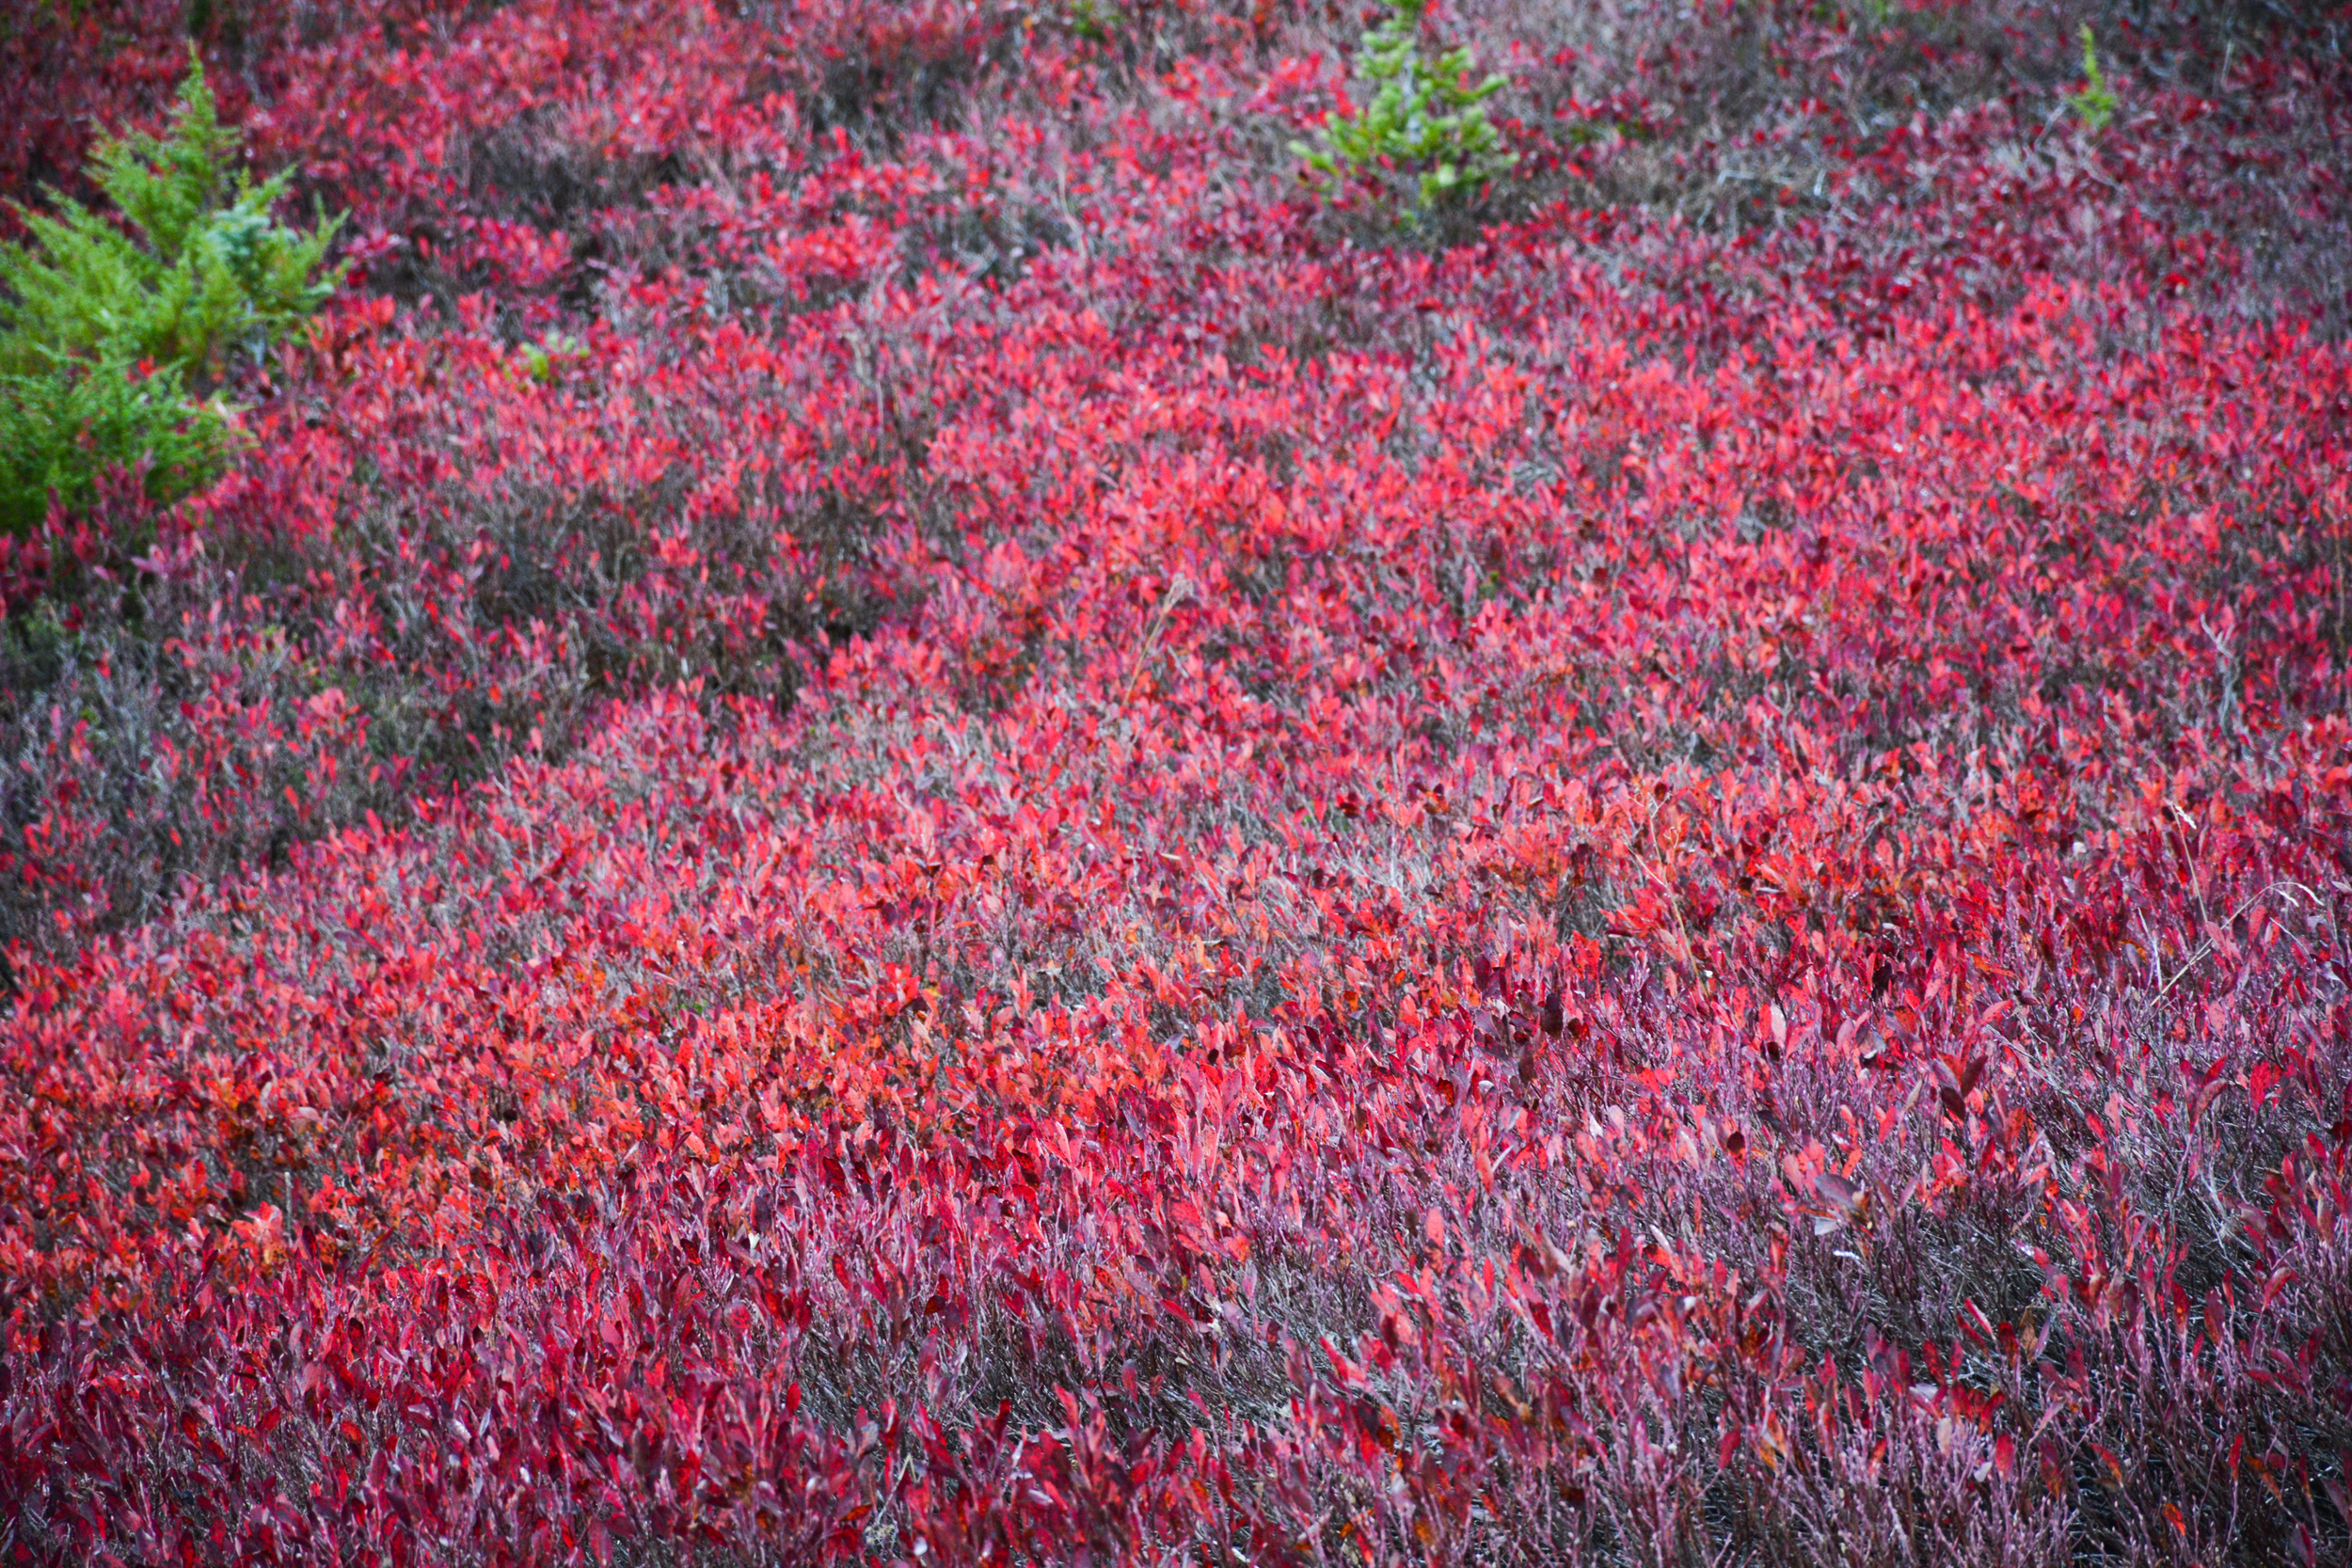 Red Blueberry Bushes at Mount Rainier National Park (Paradise_